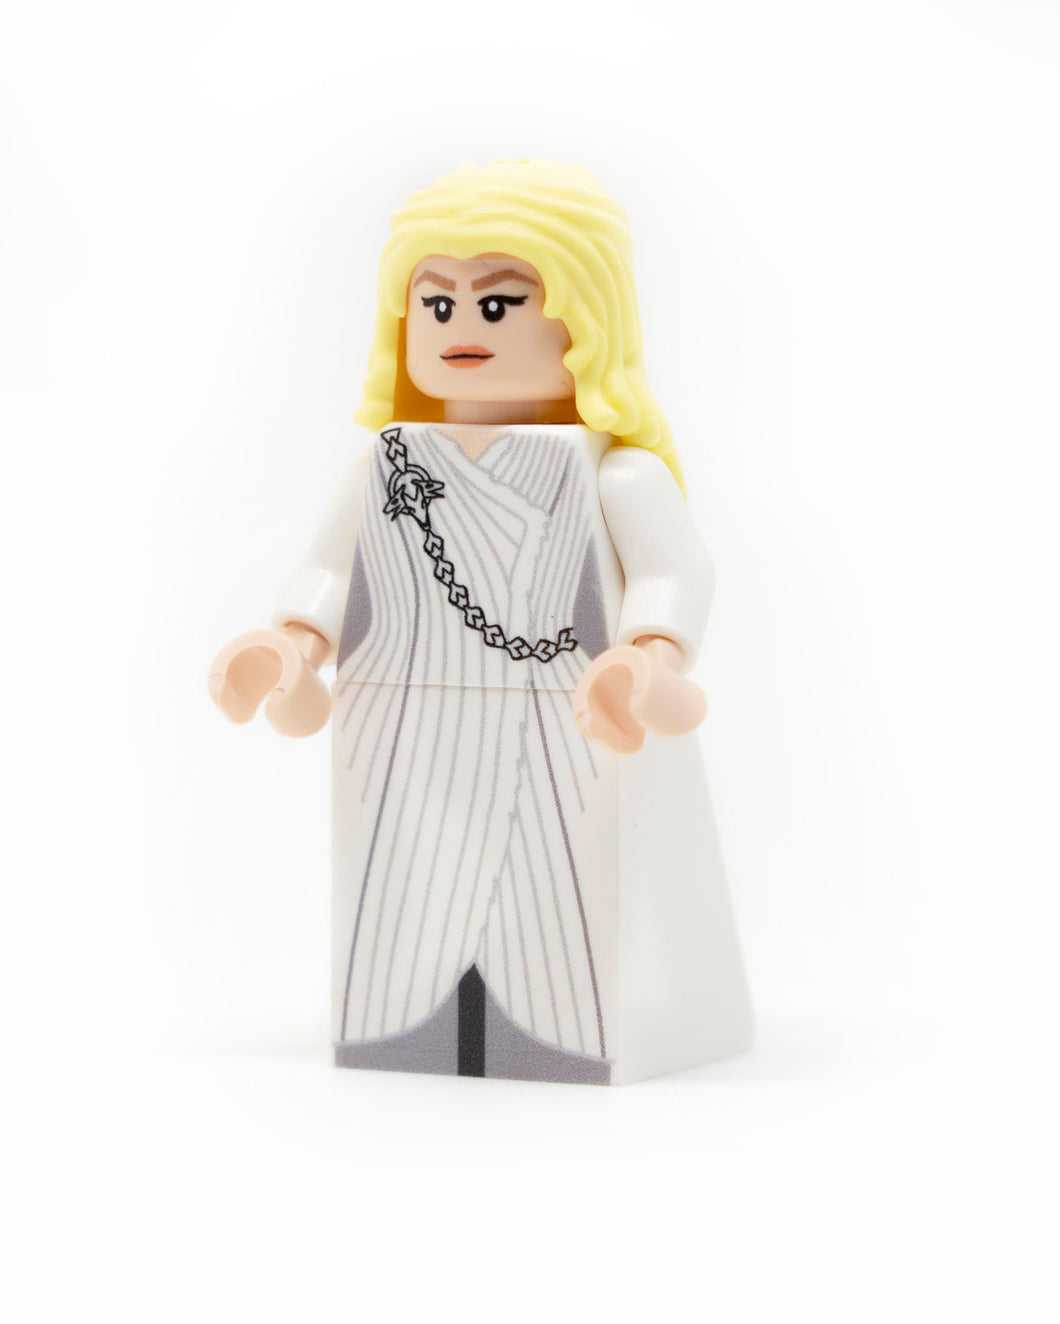 LEGO Game of Throne Daenerys Targaryen